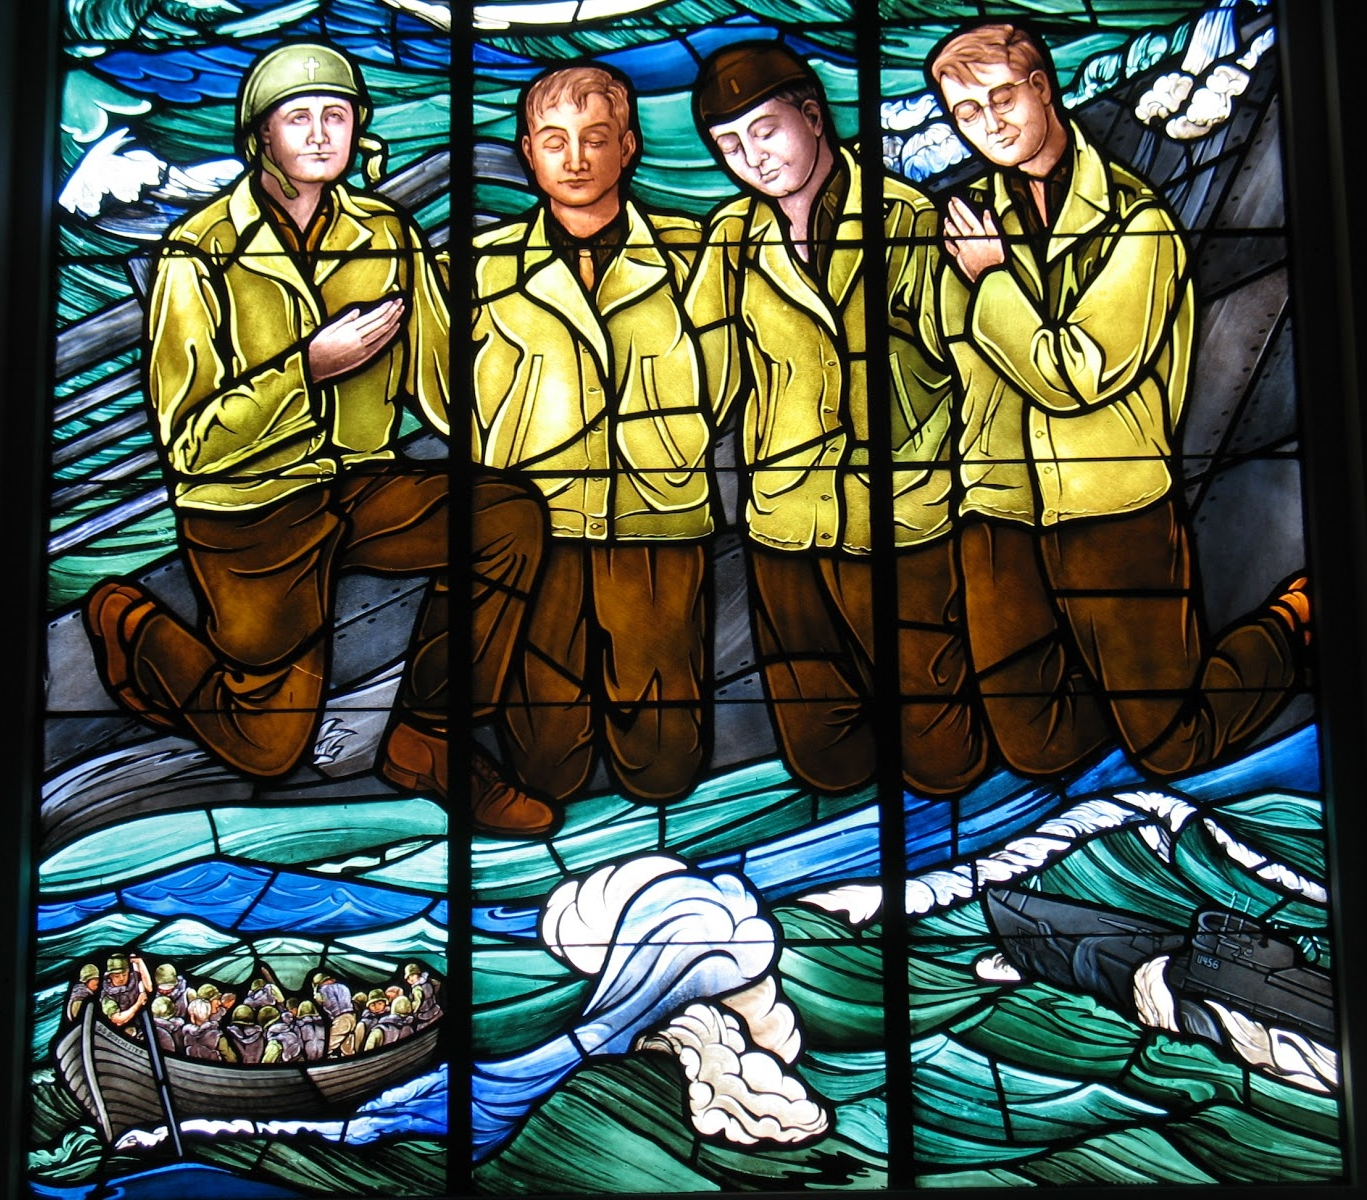 The Four Chaplains have been depicted on several stained-glass windows in churches throughout the United States.